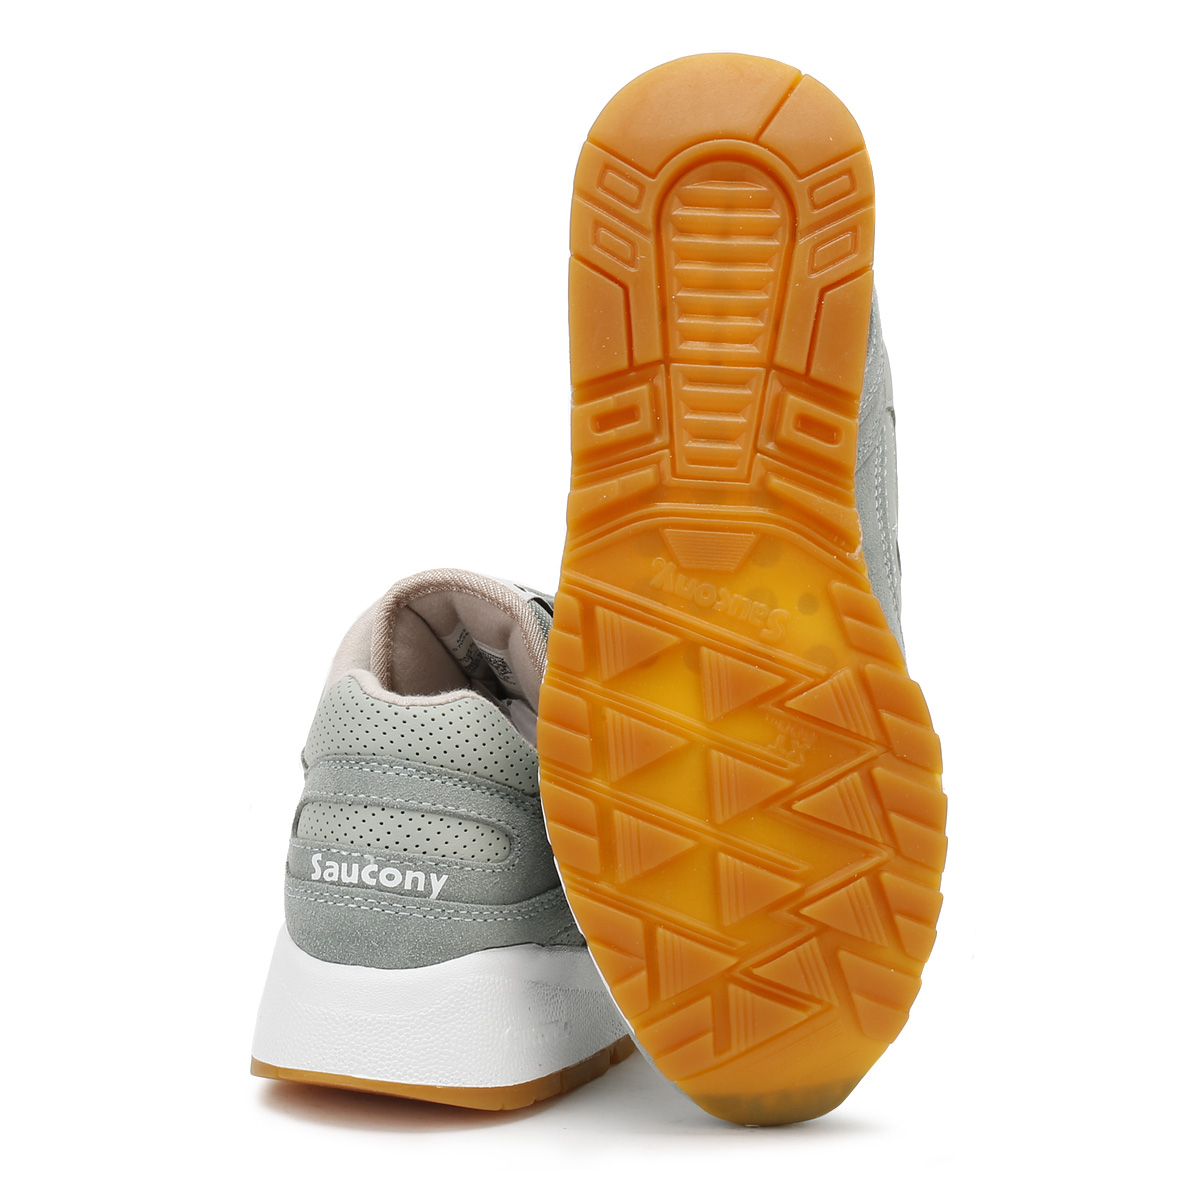 Saucony Grau  Uomo 6000 HT Grau Saucony Classic Trainers Lace Up Suede Sports Casual Schuhes 03259d